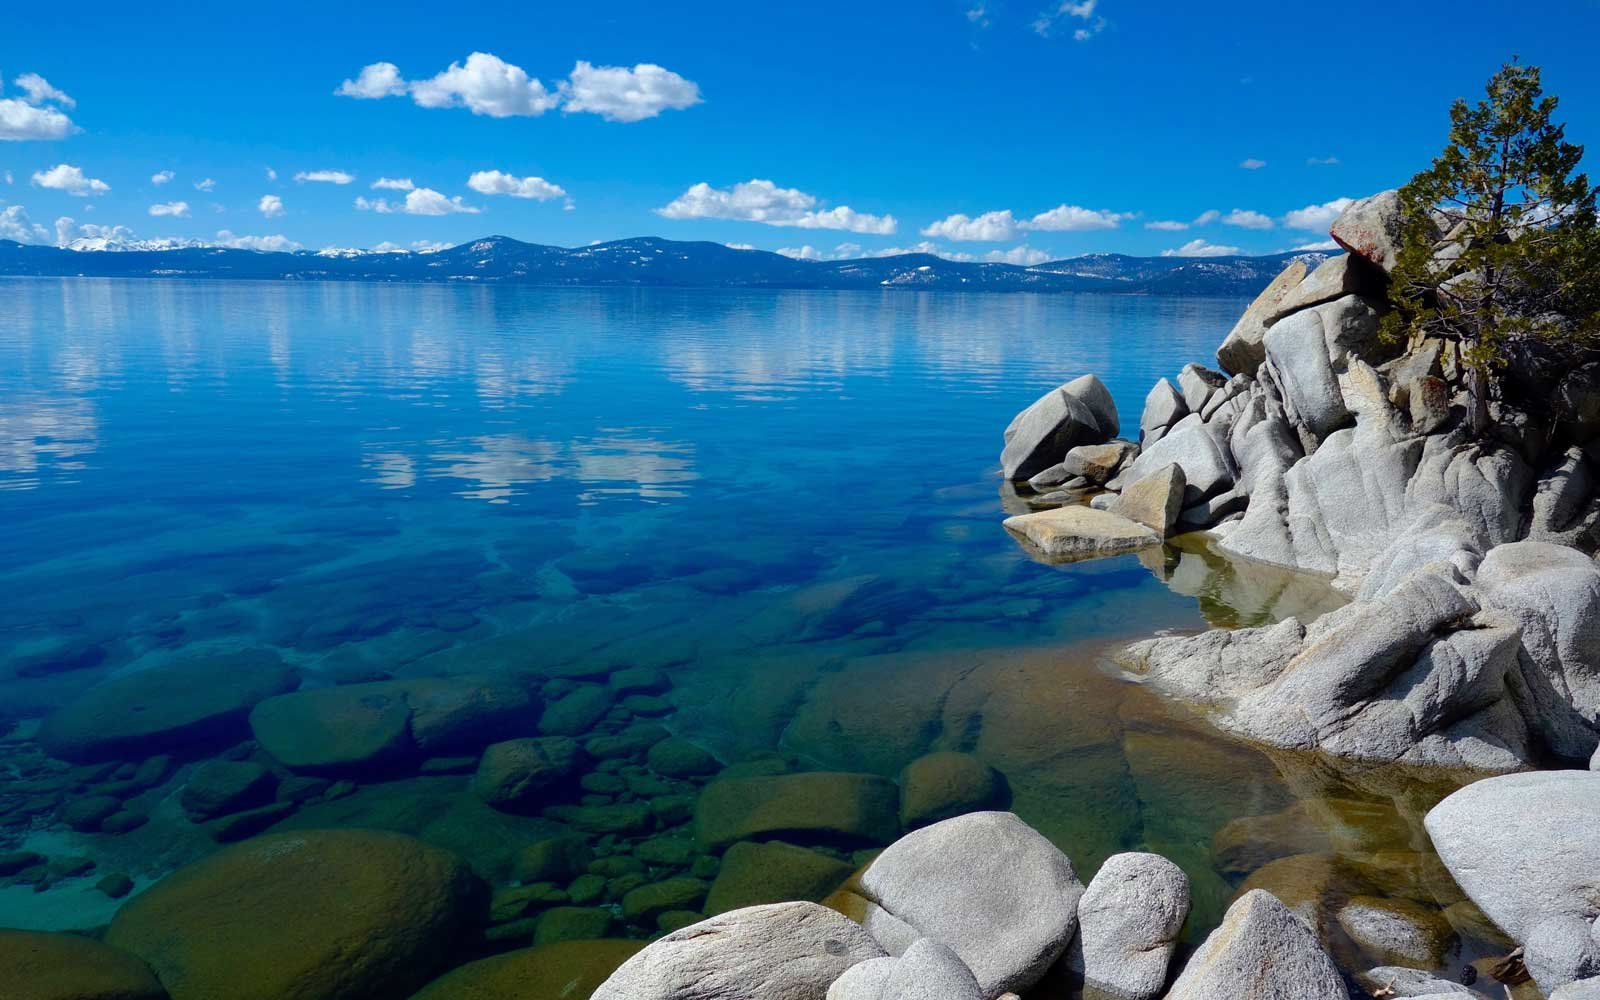 Lake Tahoe, Stateline, Nevada